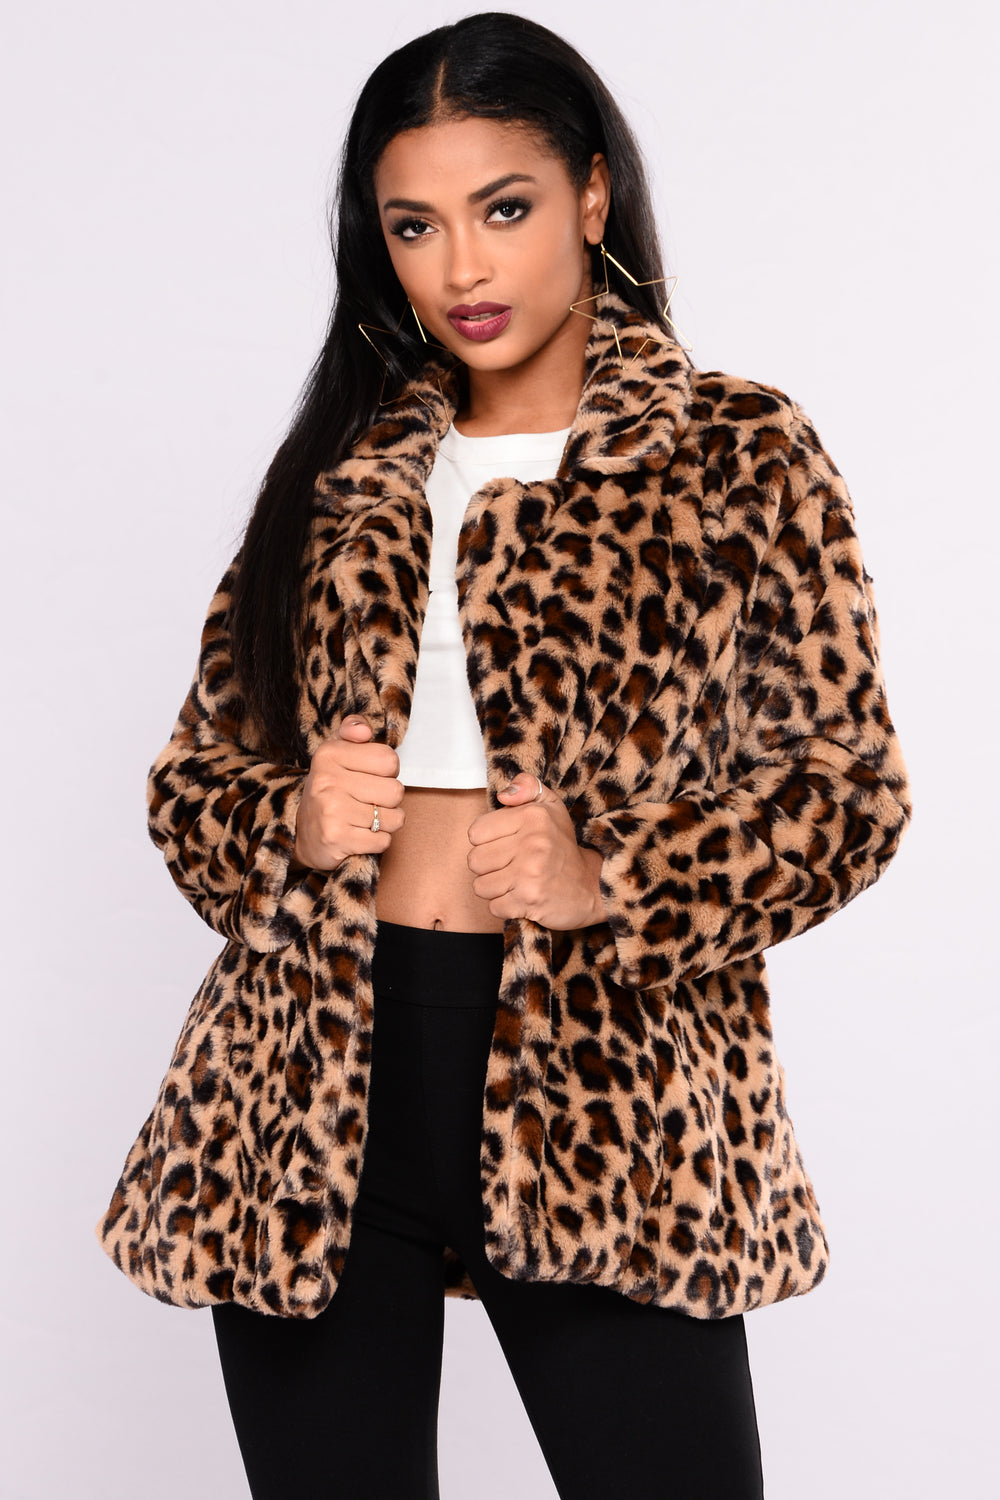 Cause I'm Cozy Faux Fur Jacket - Brown